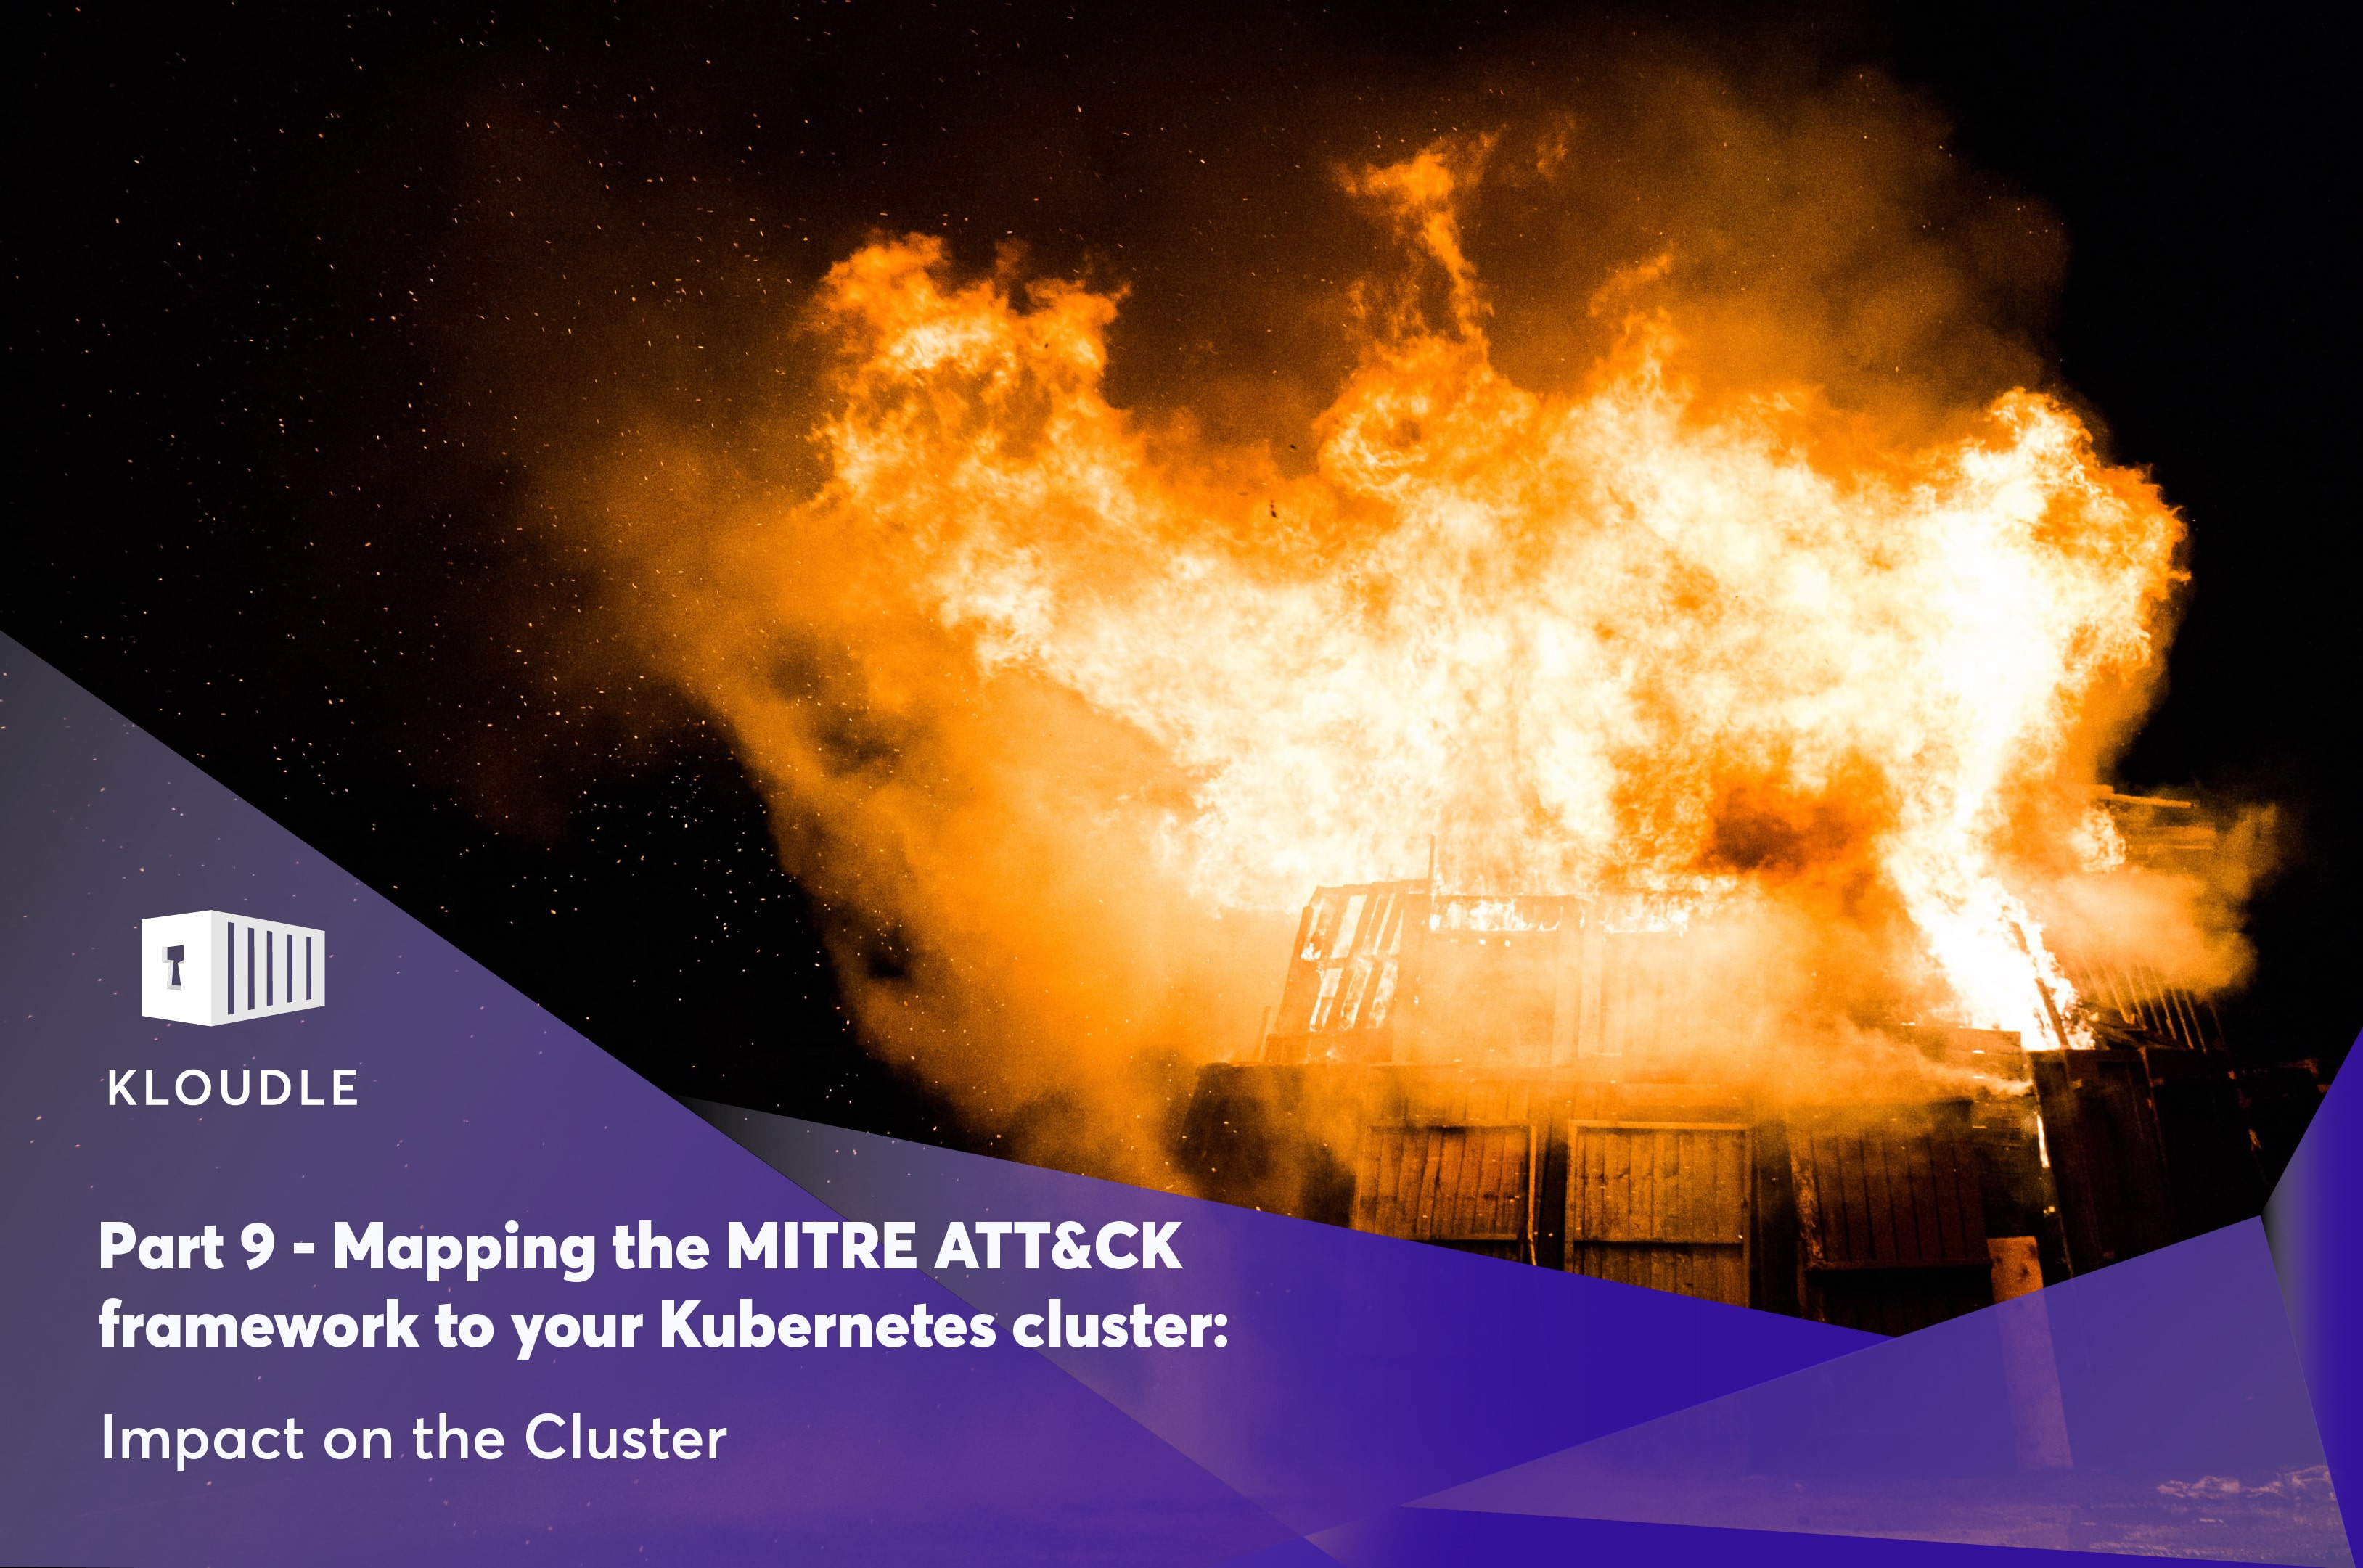 Part 9 - Mapping the MITRE ATT&CK framework to your Kubernetes cluster: Impact on the Cluster